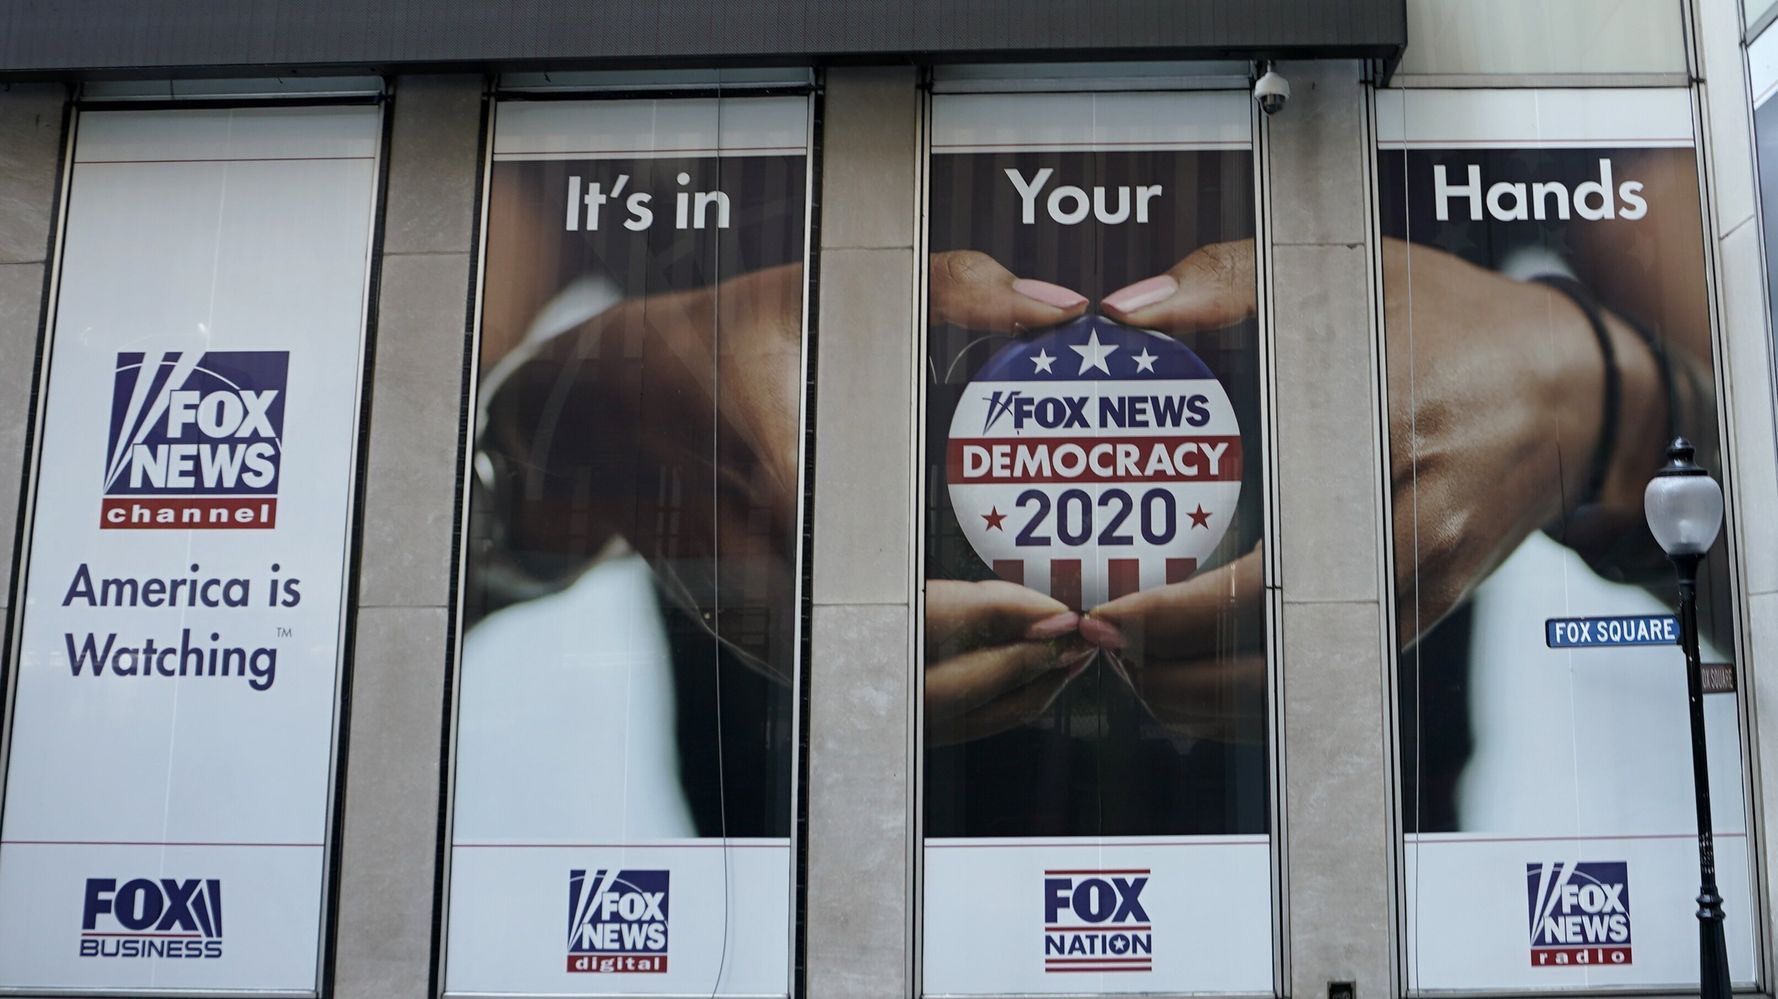 Fox News Is Pushing Dangerous Propaganda About Election Theft